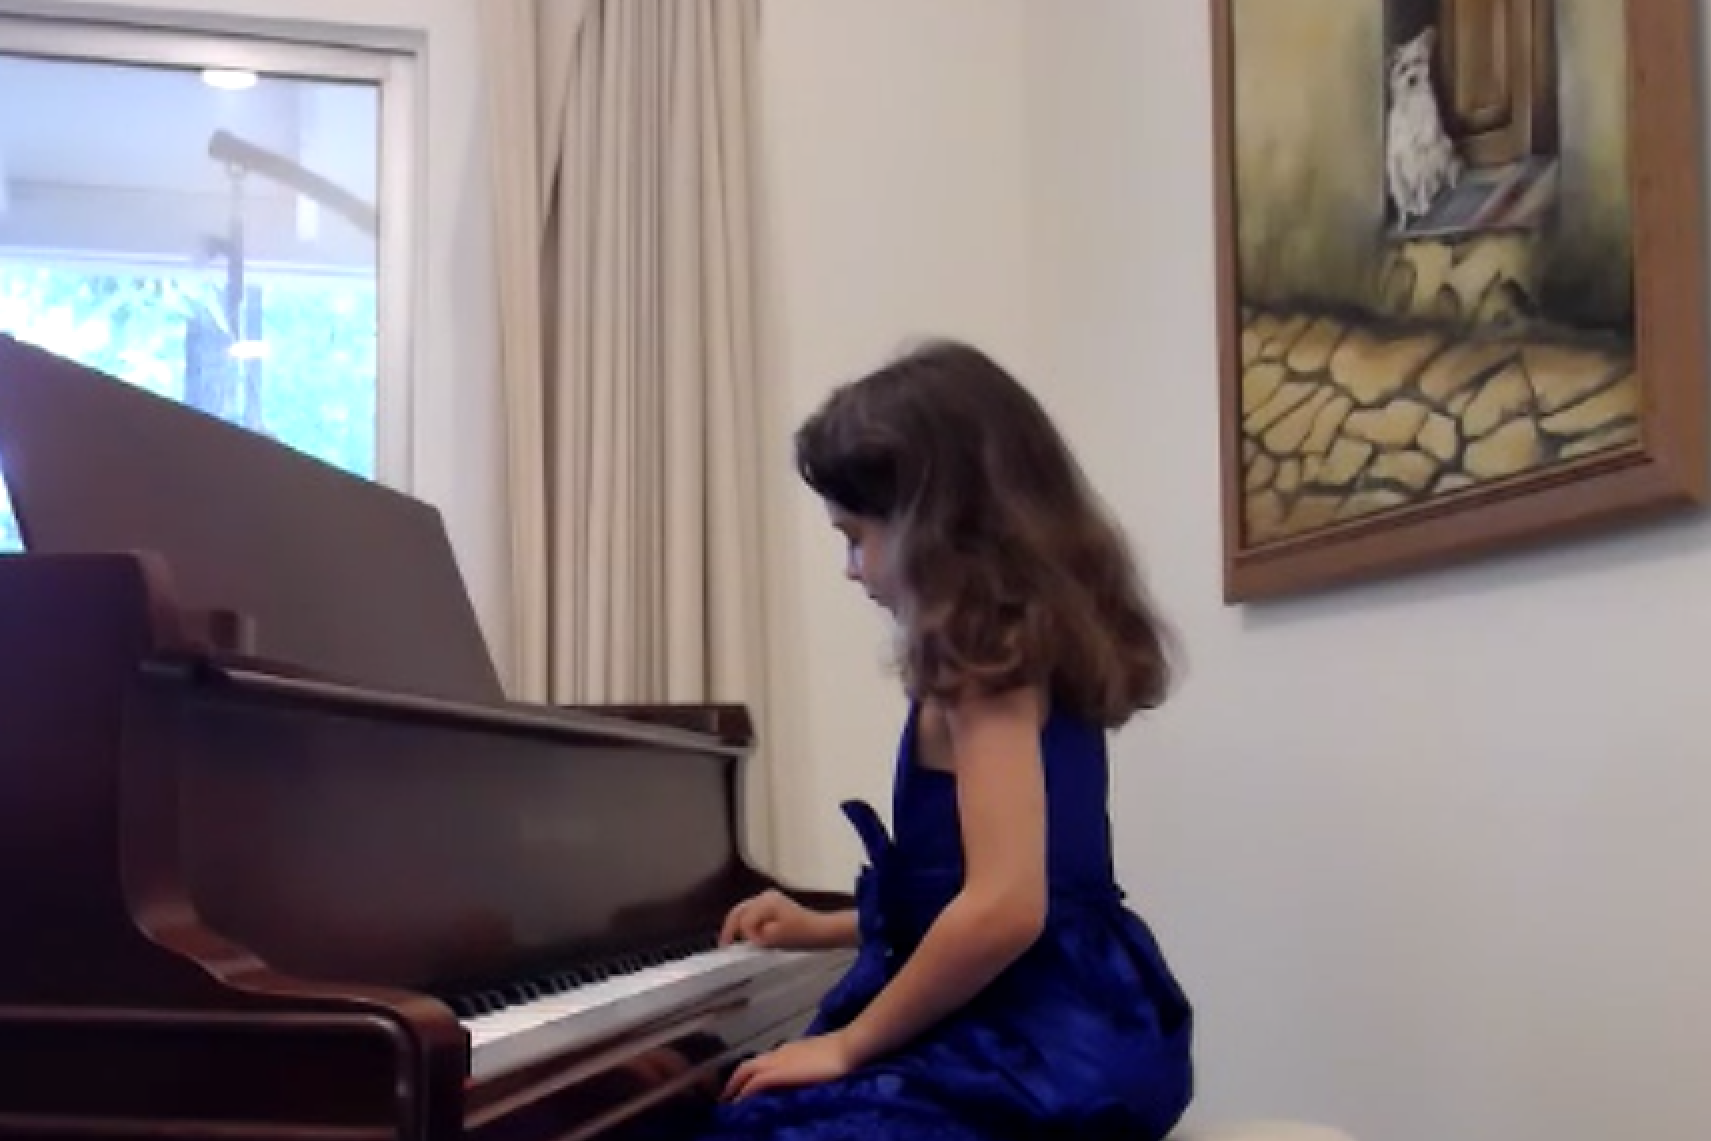 Young Girl in Blue Dress Playing Piano